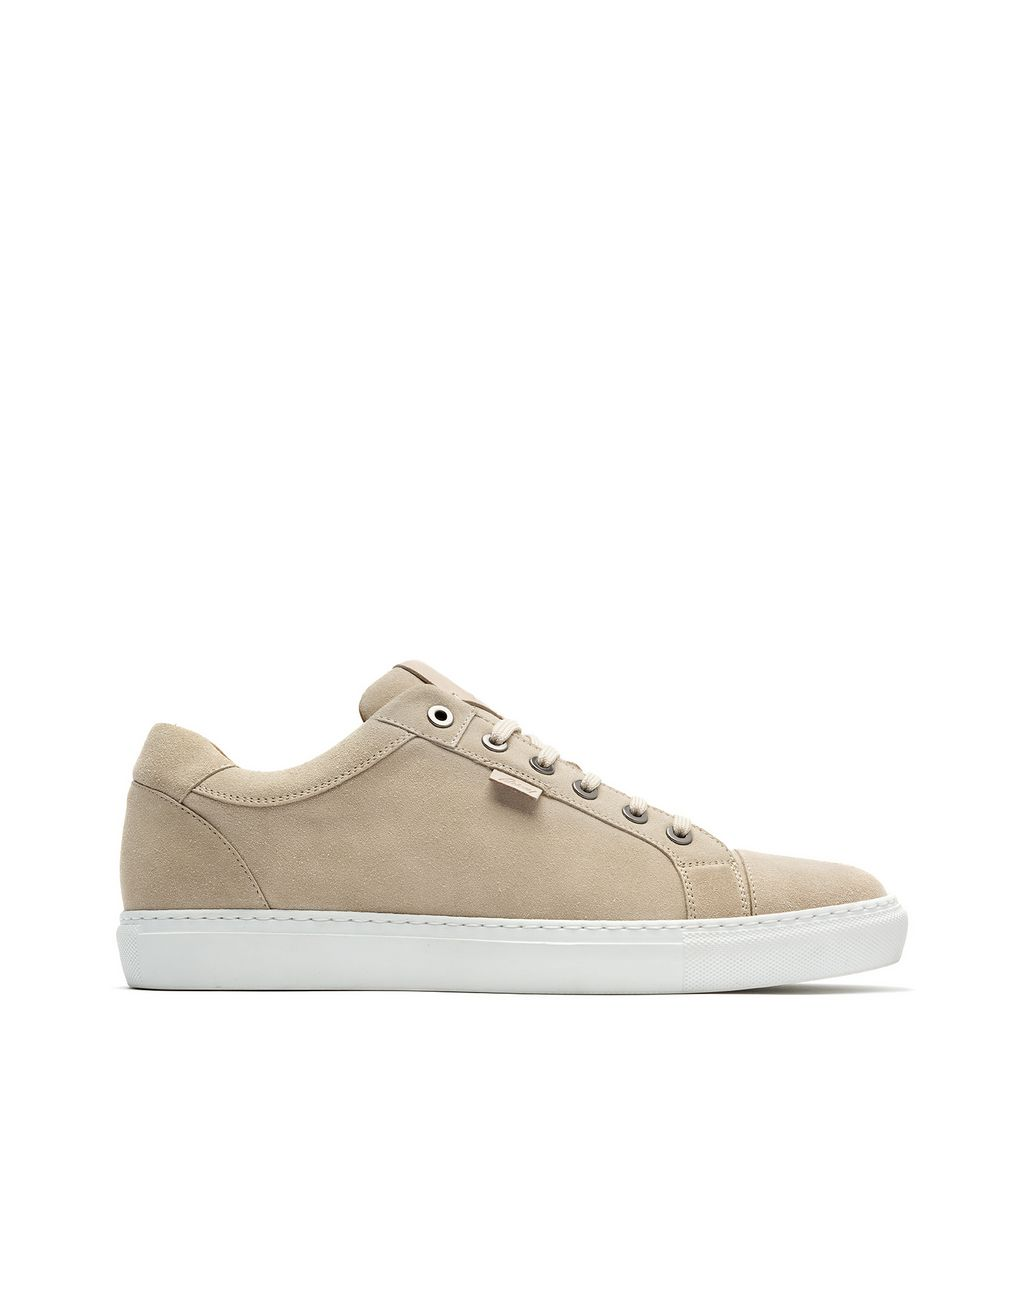 BRIONI Ivory Calfskin Suede Sneaker Sneakers [*** pickupInStoreShippingNotGuaranteed_info ***] f